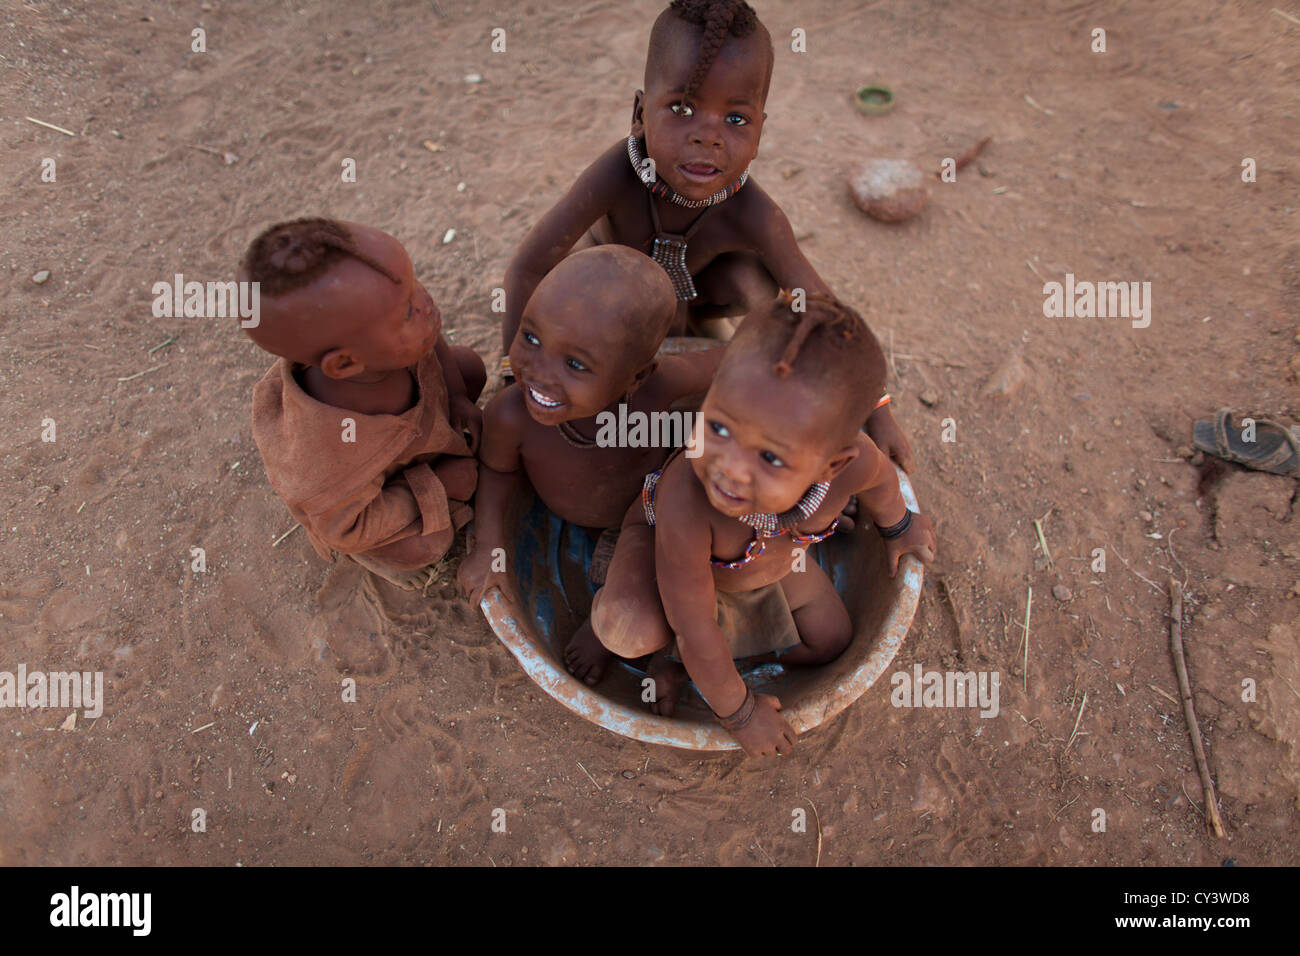 Himba tribe in Namibia. - Stock Image